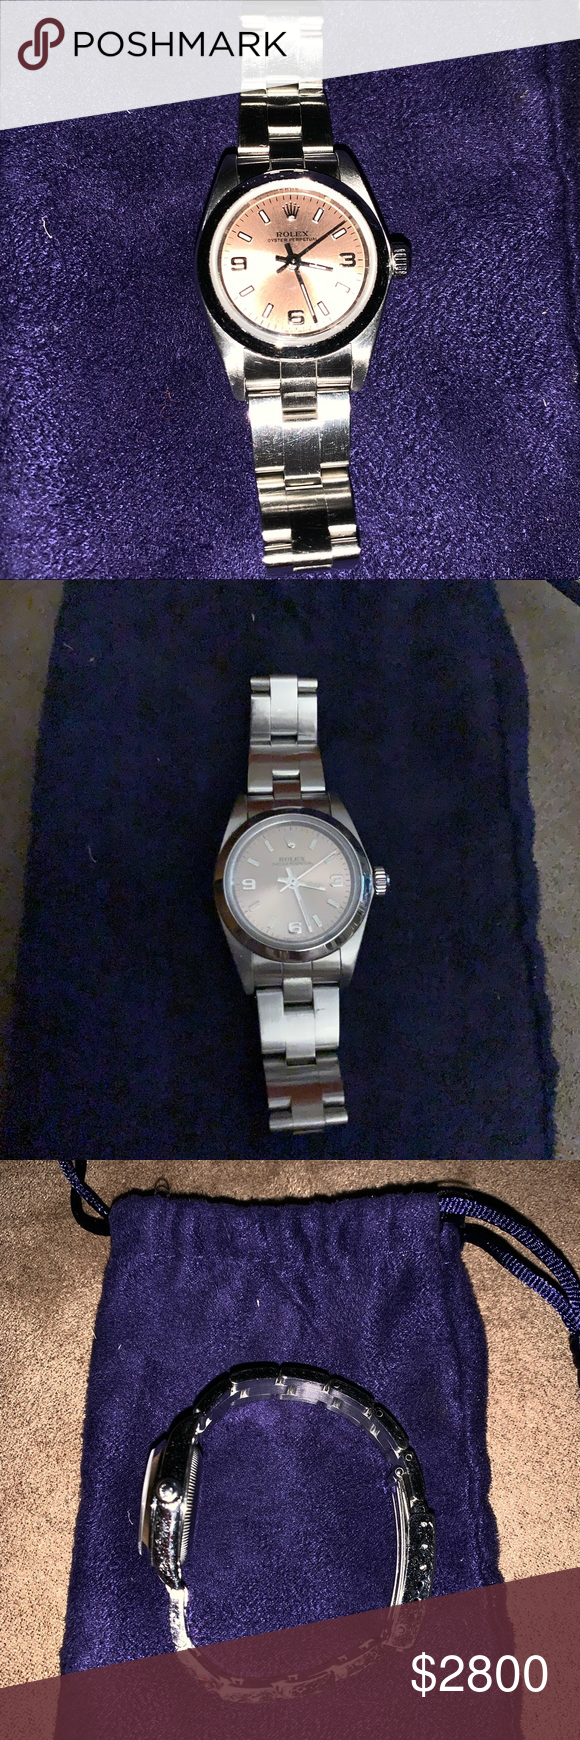 24 mm Lady Rolex Stainless Steel Oyster Perpetual Pink